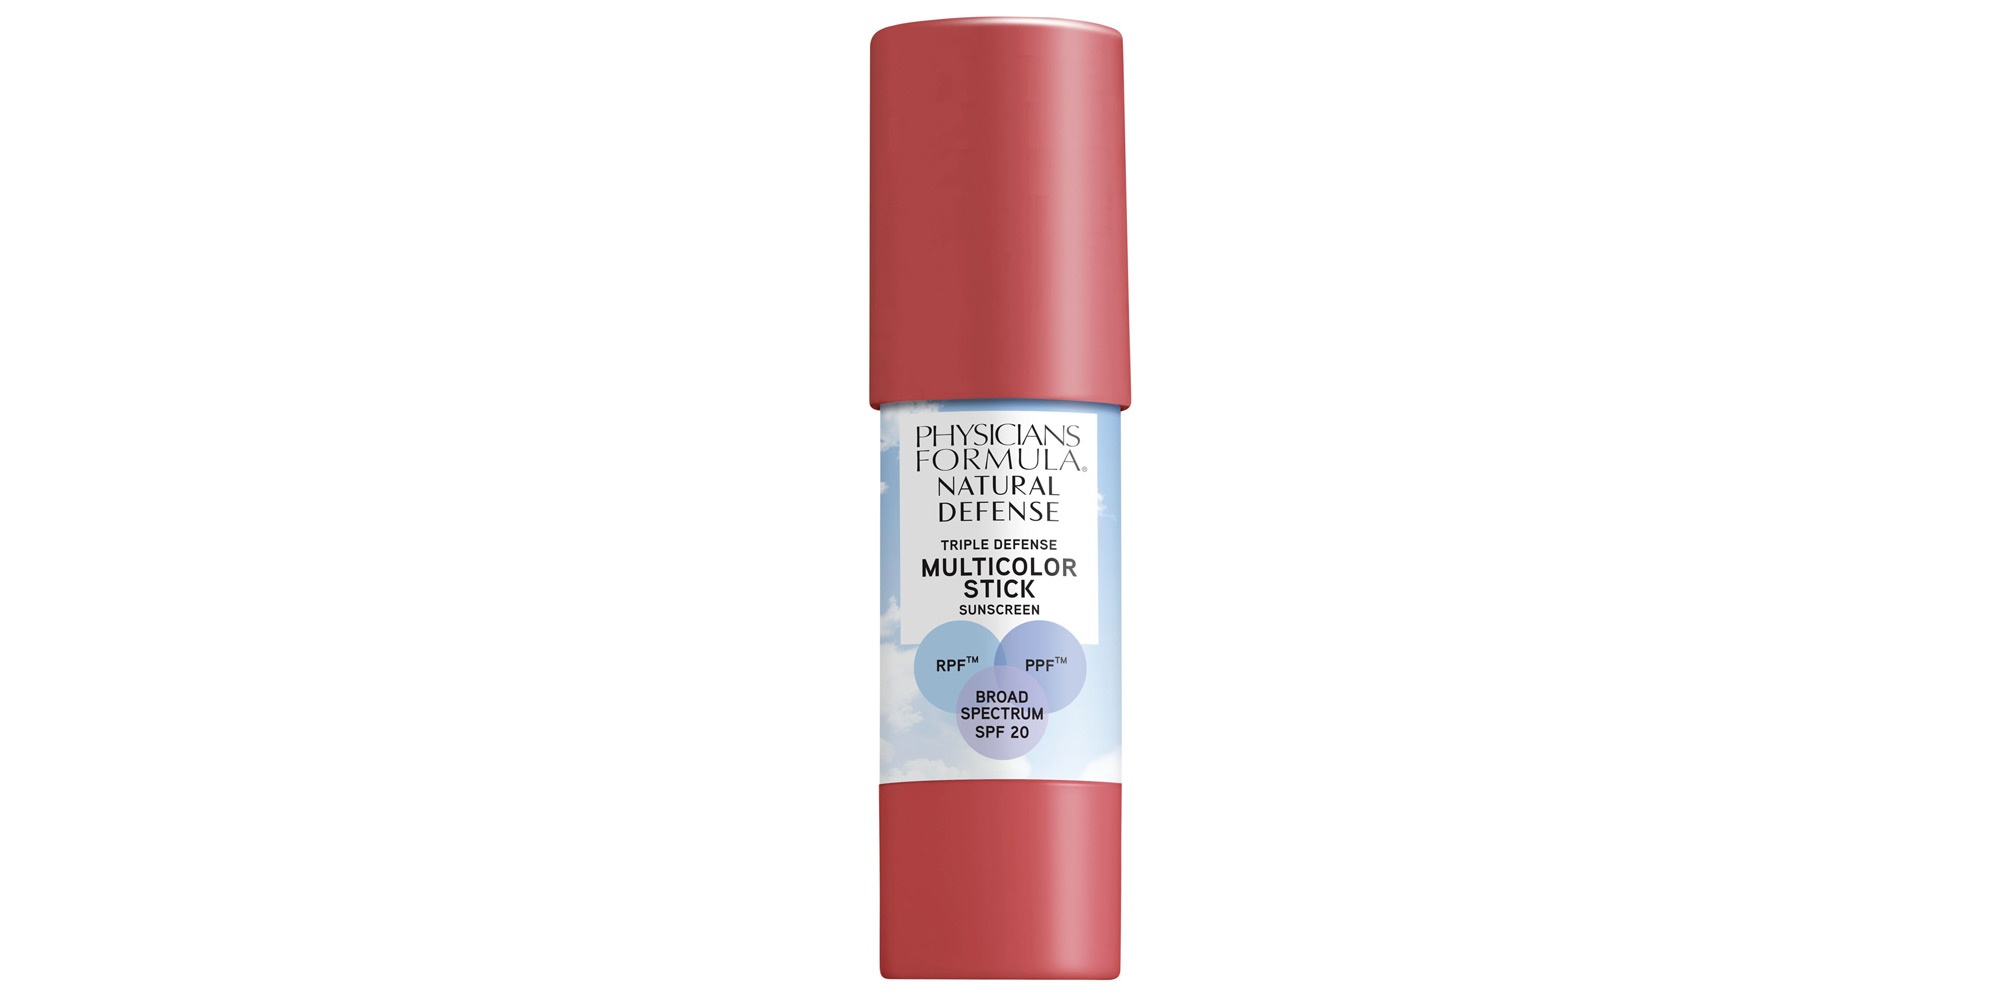 Physicians Formula Natural Defense Triple Defense Multicolor Stick SPF 20